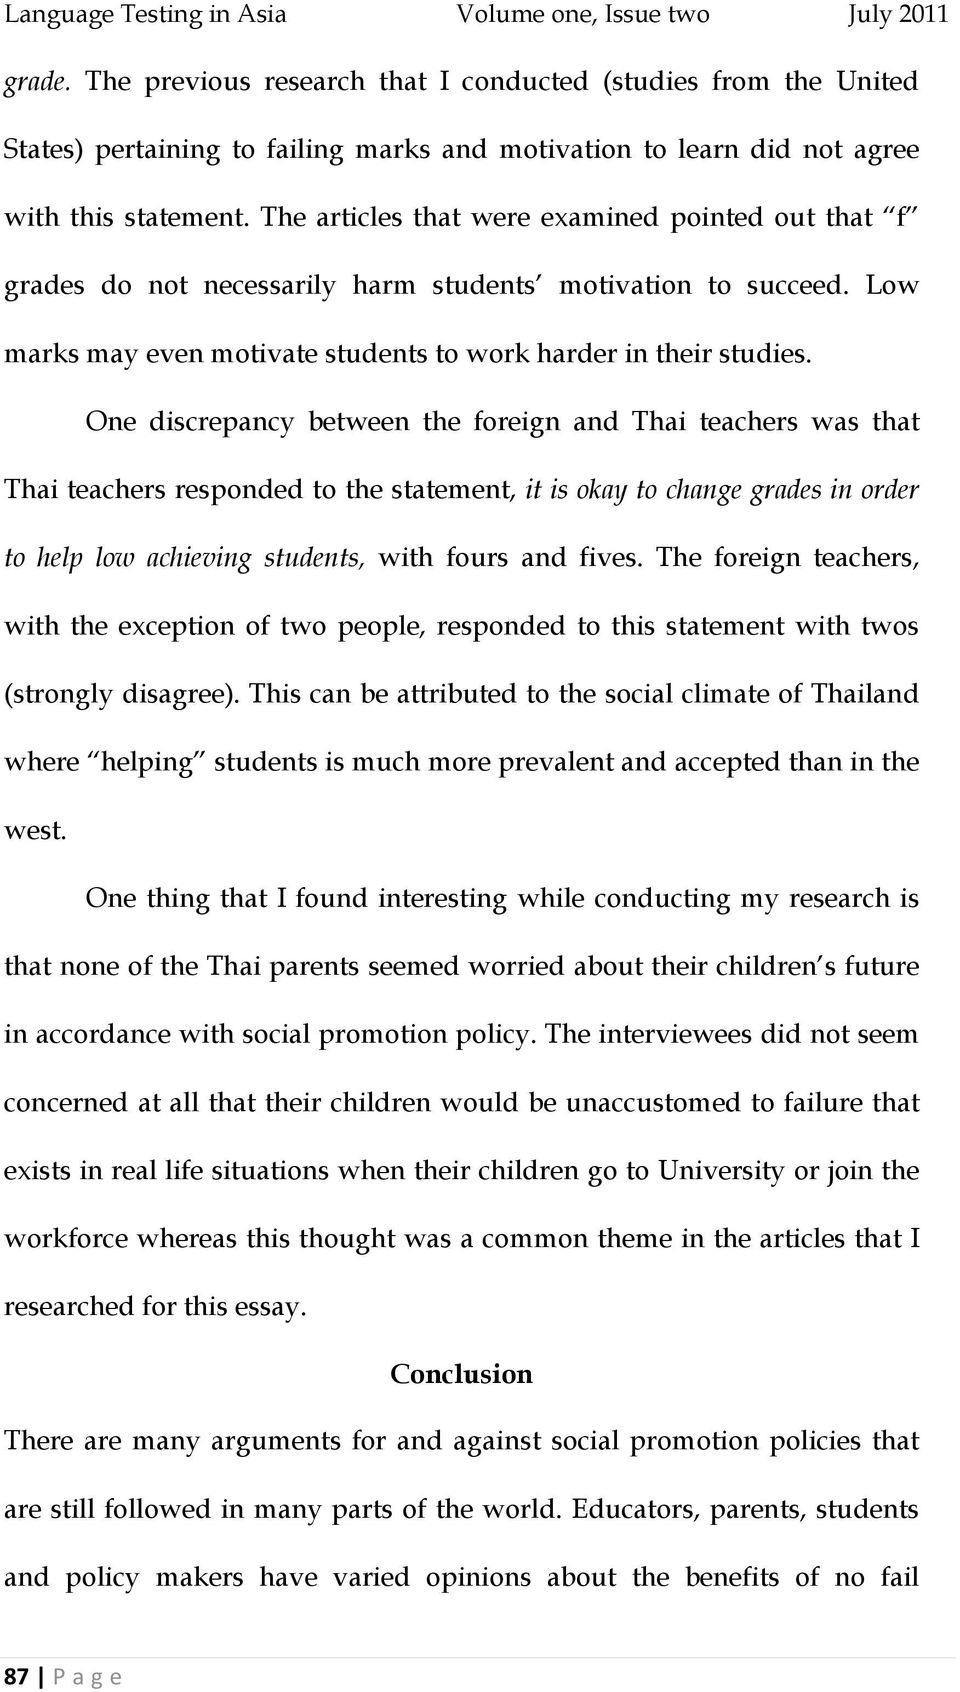 One discrepancy between the foreign and Thai teachers was that Thai teachers responded to the statement, it is okay to change grades in order to help low achieving students, with fours and fives.